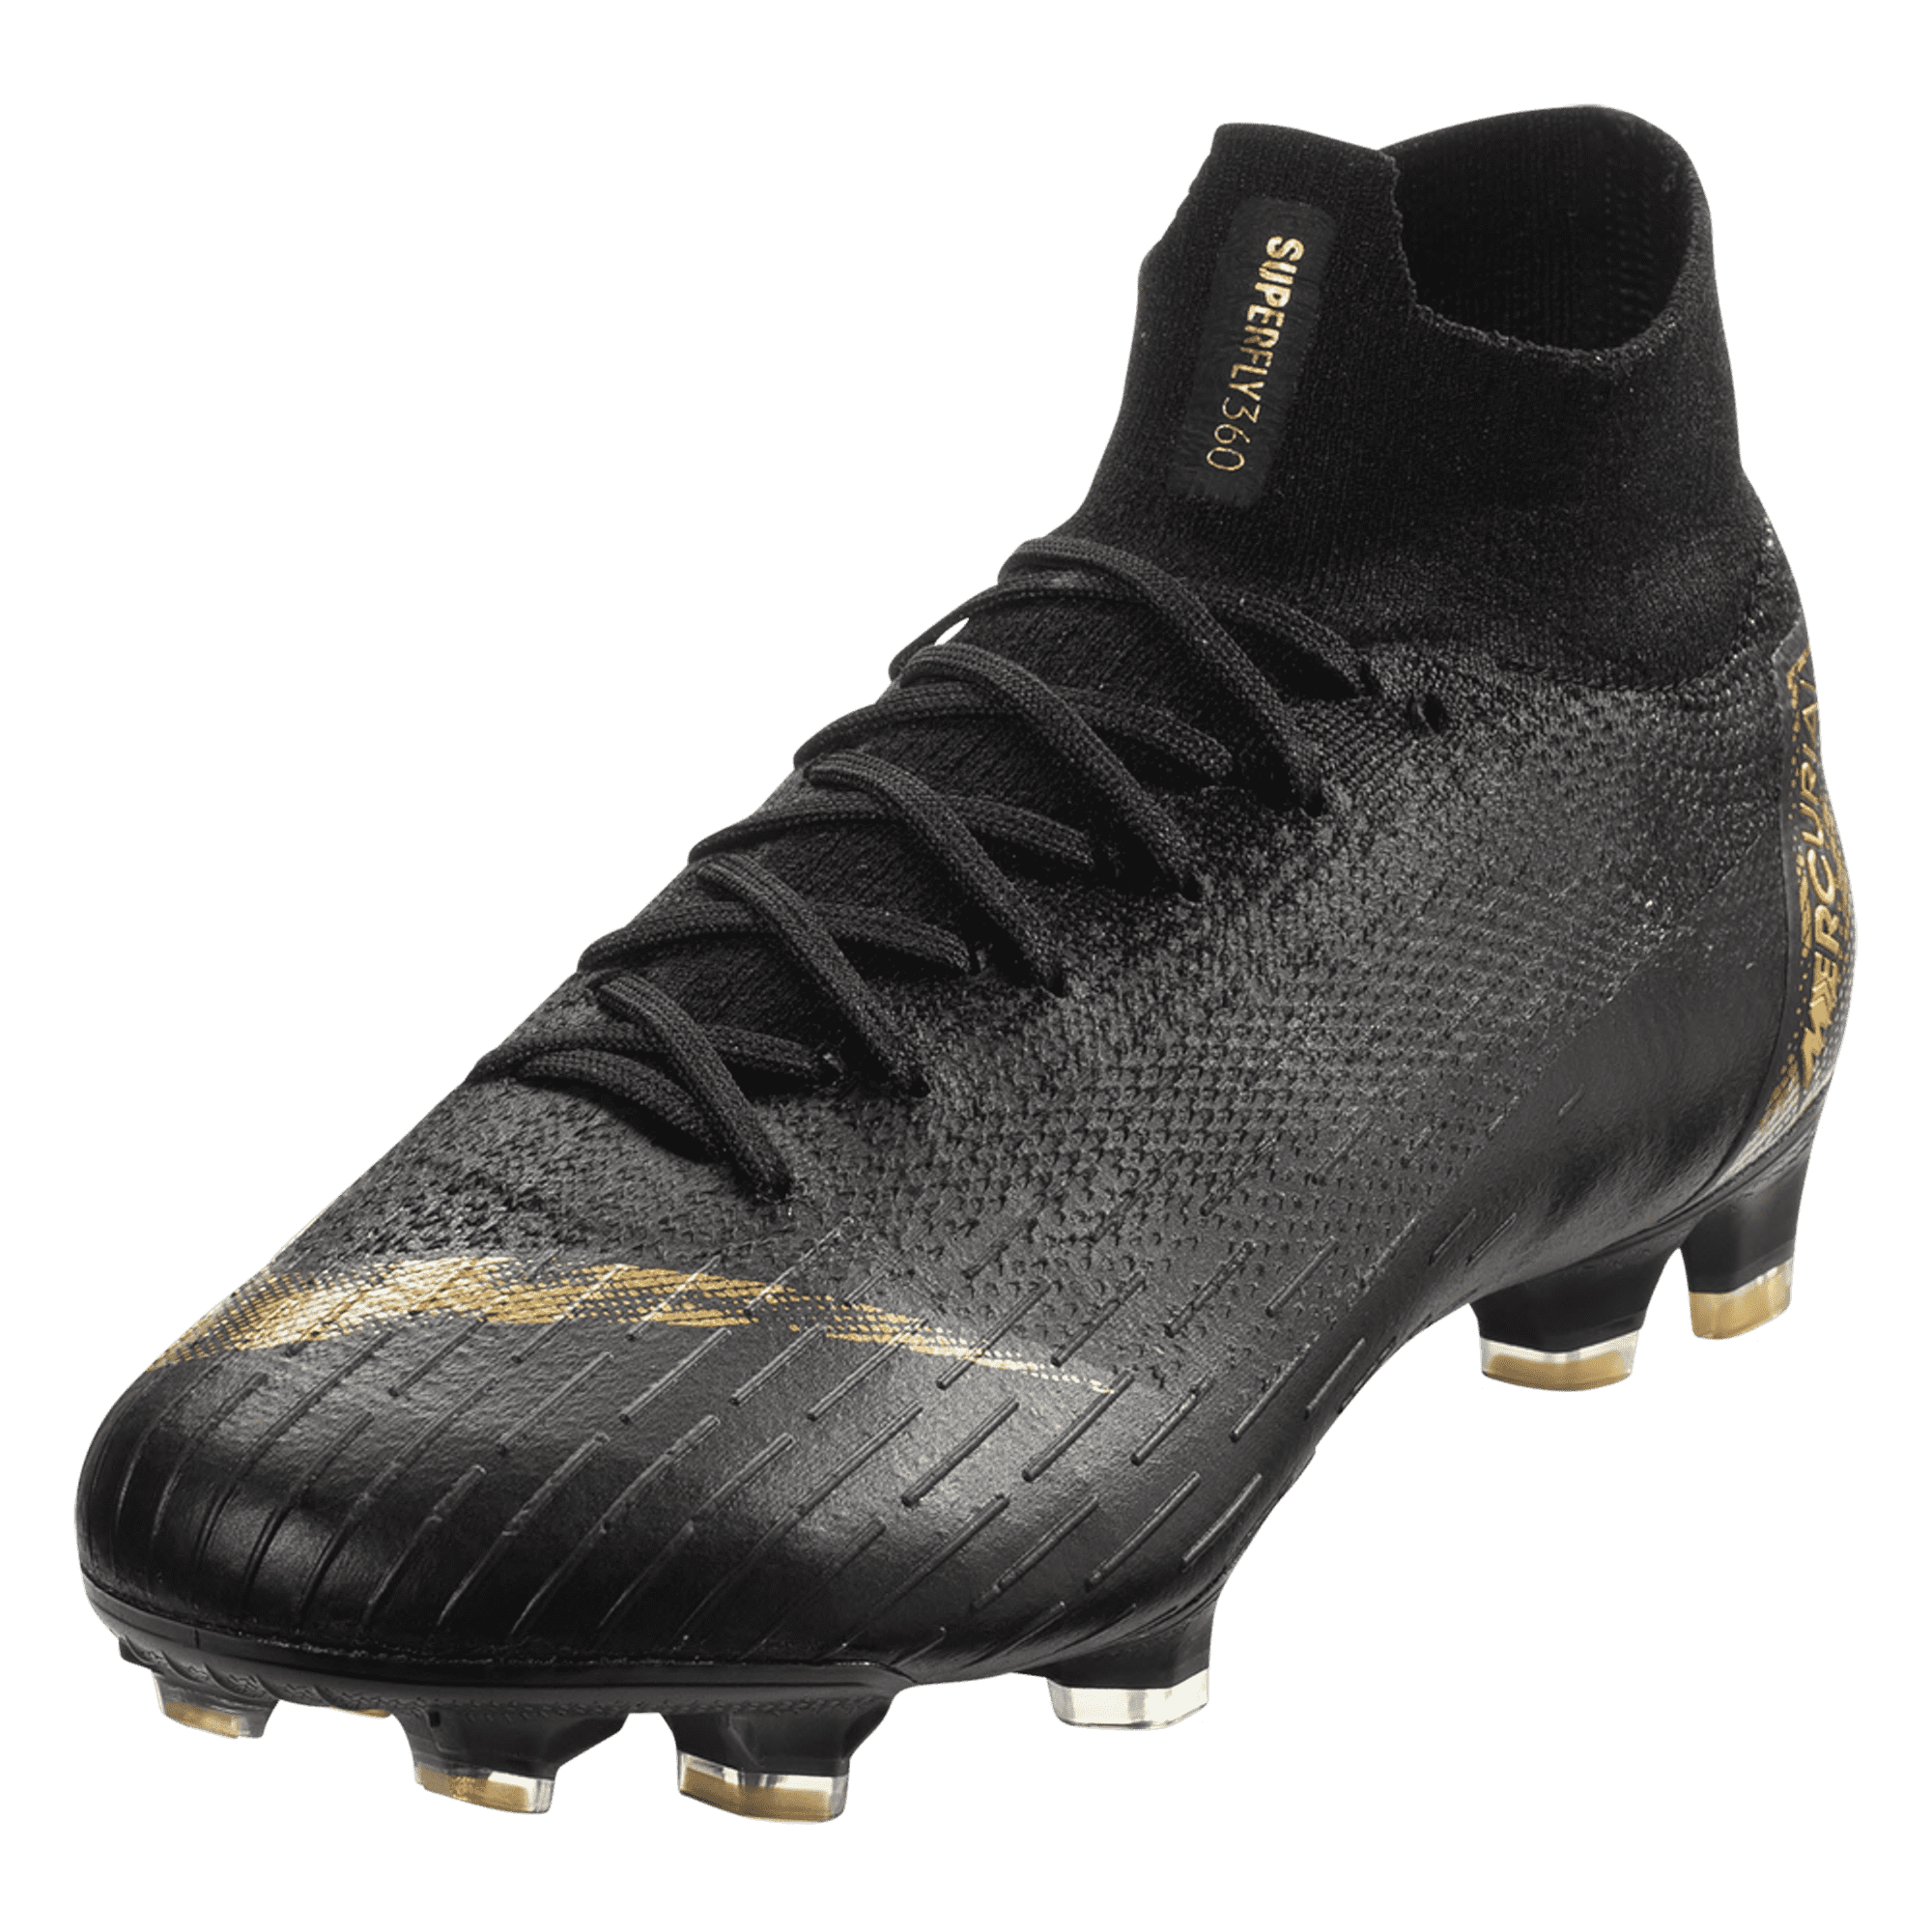 0621e5ee92e Nike Mercurial Superfly VI Elite FG Soccer Cleat – Black Metallic Gold